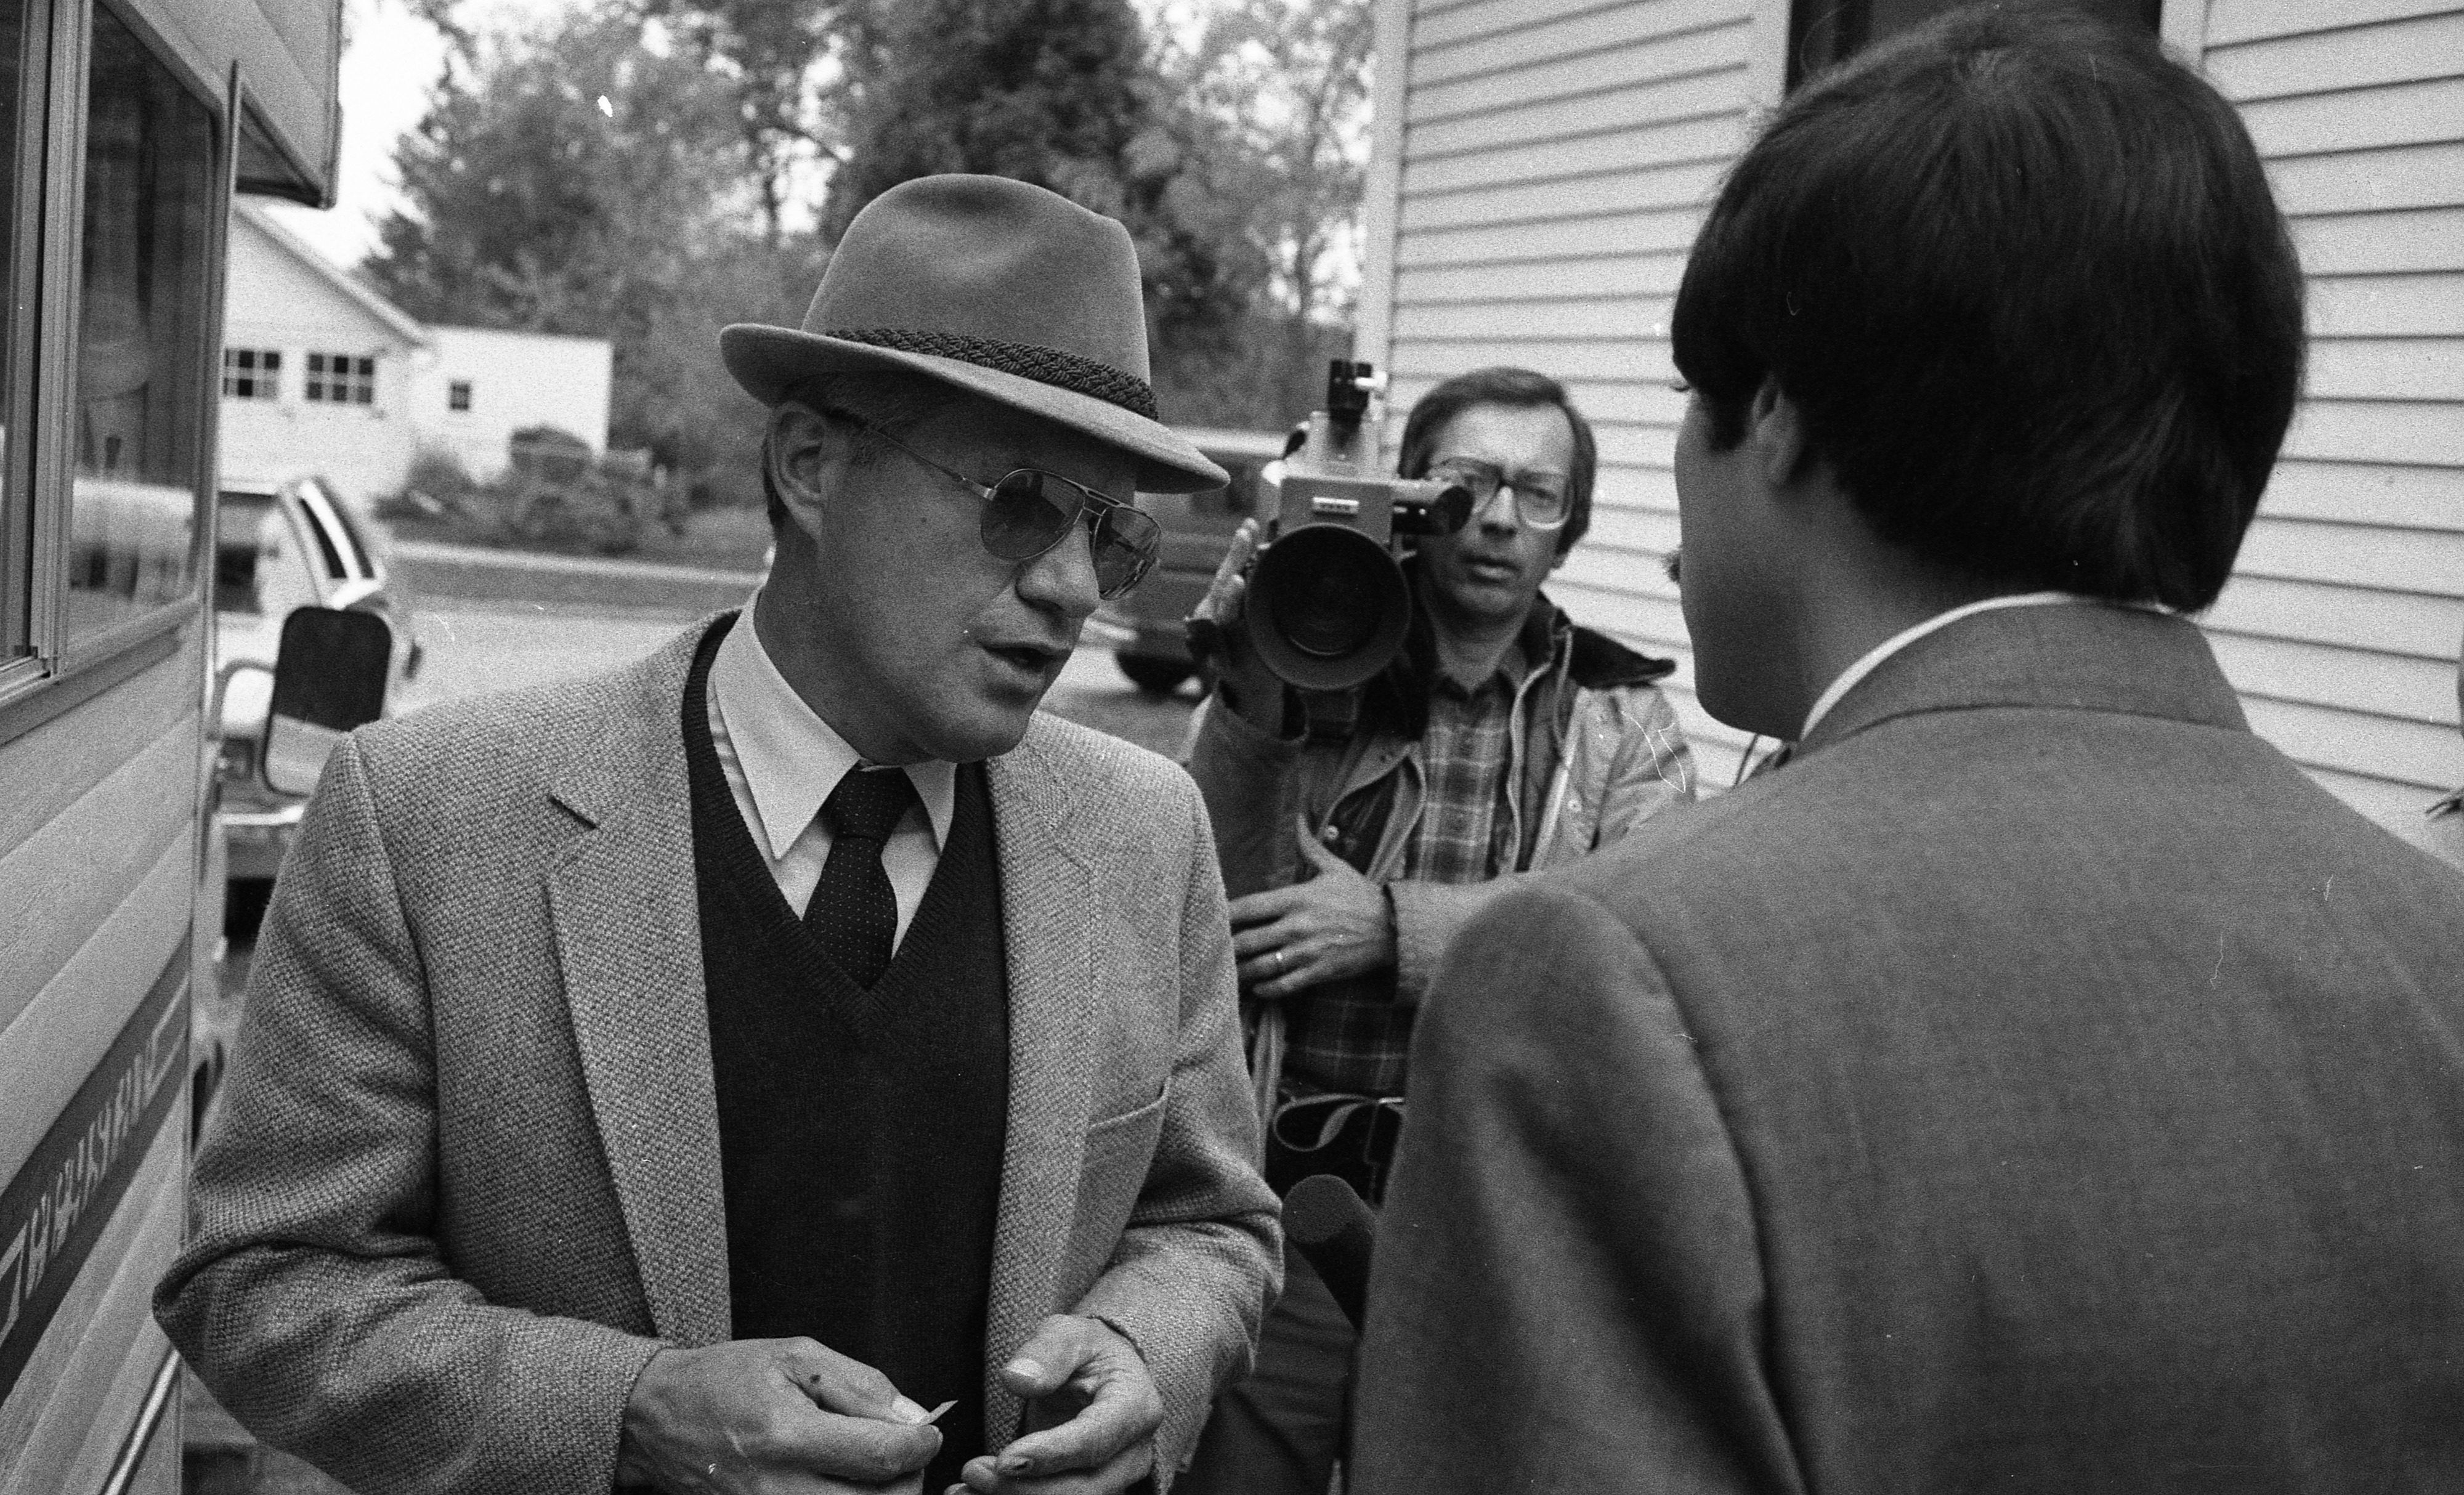 Ann Arbor Police Chief William J. Corbett Talks To Reporters During Manhunt for Kyle Johnson, October 1982 image